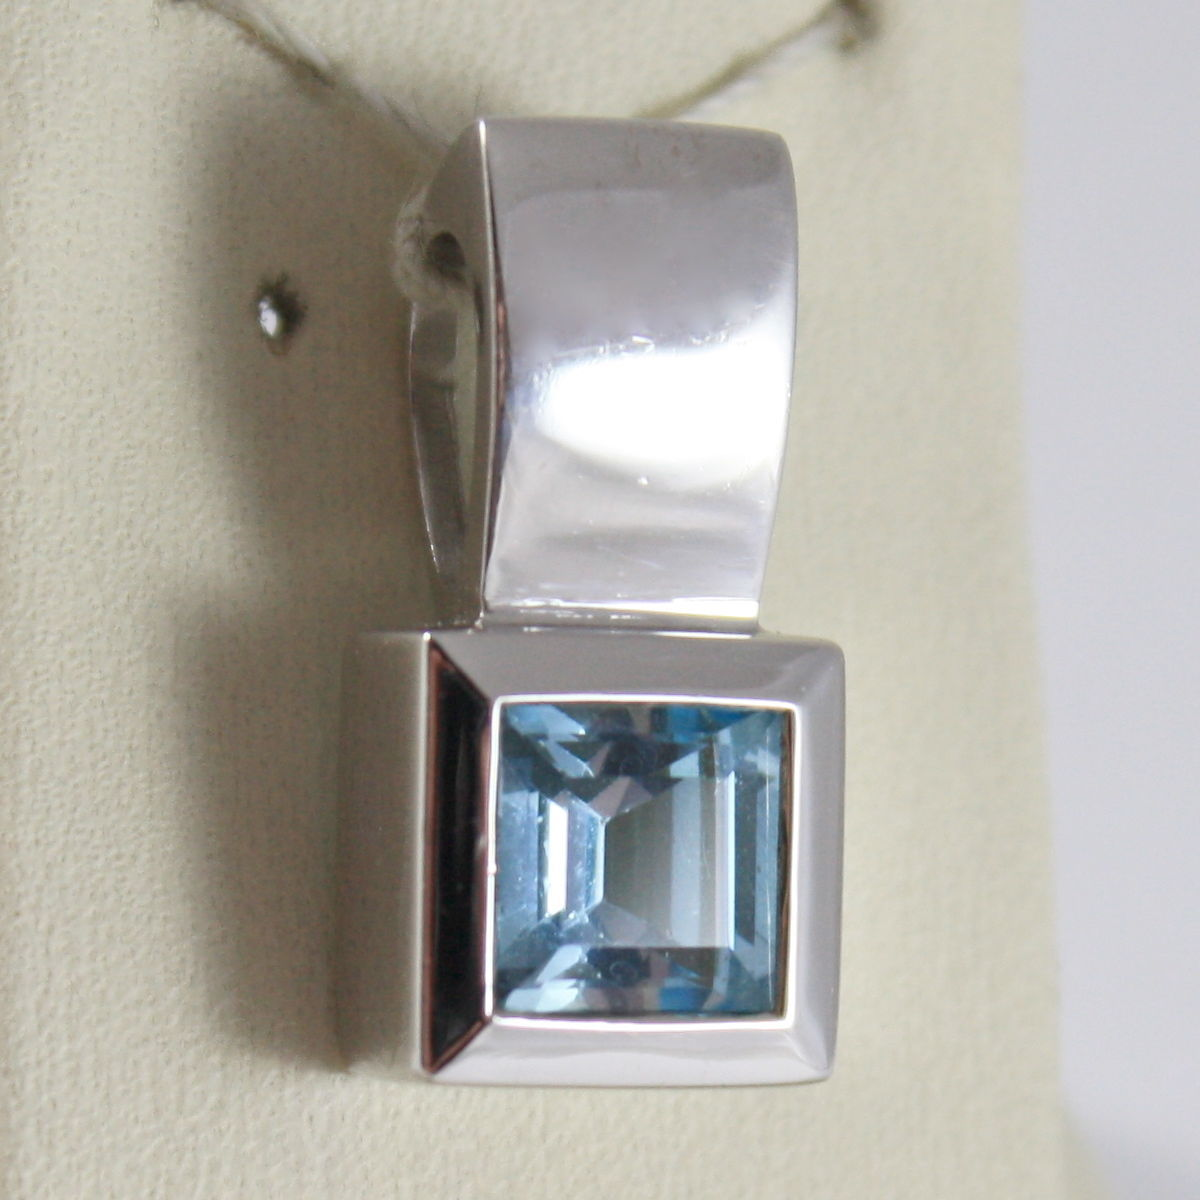 SOLID 18K WHITE GOLD PENDANT, BLUE TOPAZ CT 1.5 PRINCESS CUT MADE IN ITALY